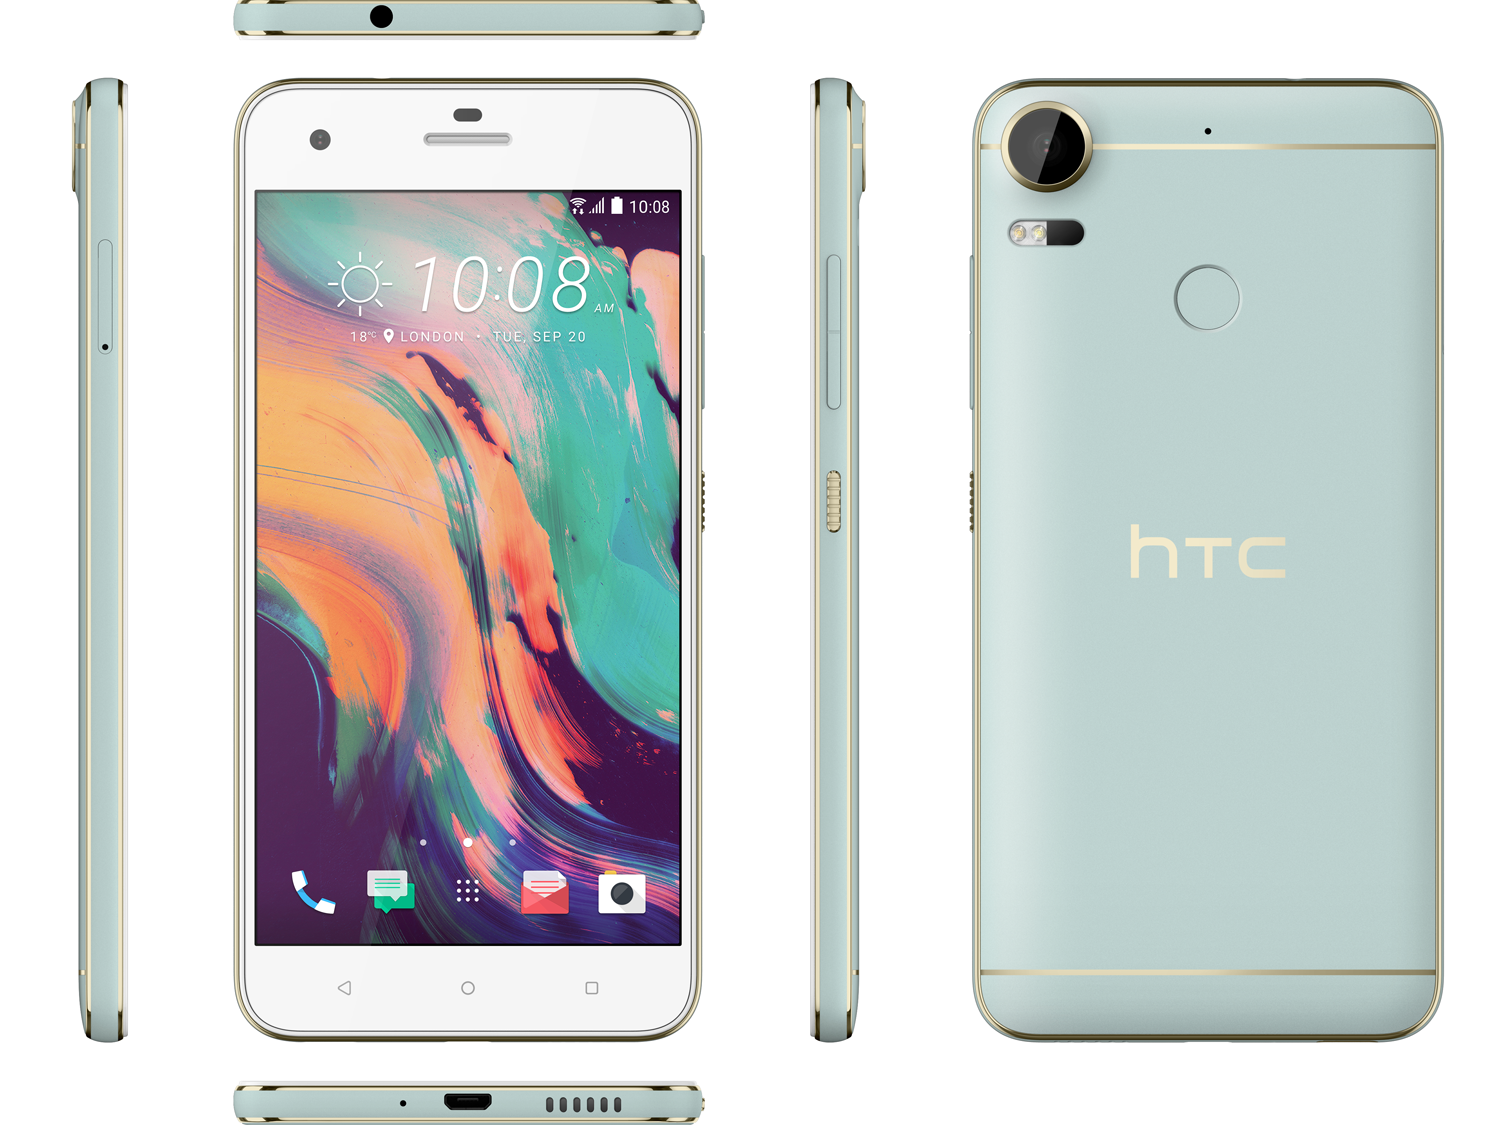 HTCs newest phones are gorgeous and affordable but have one big catch